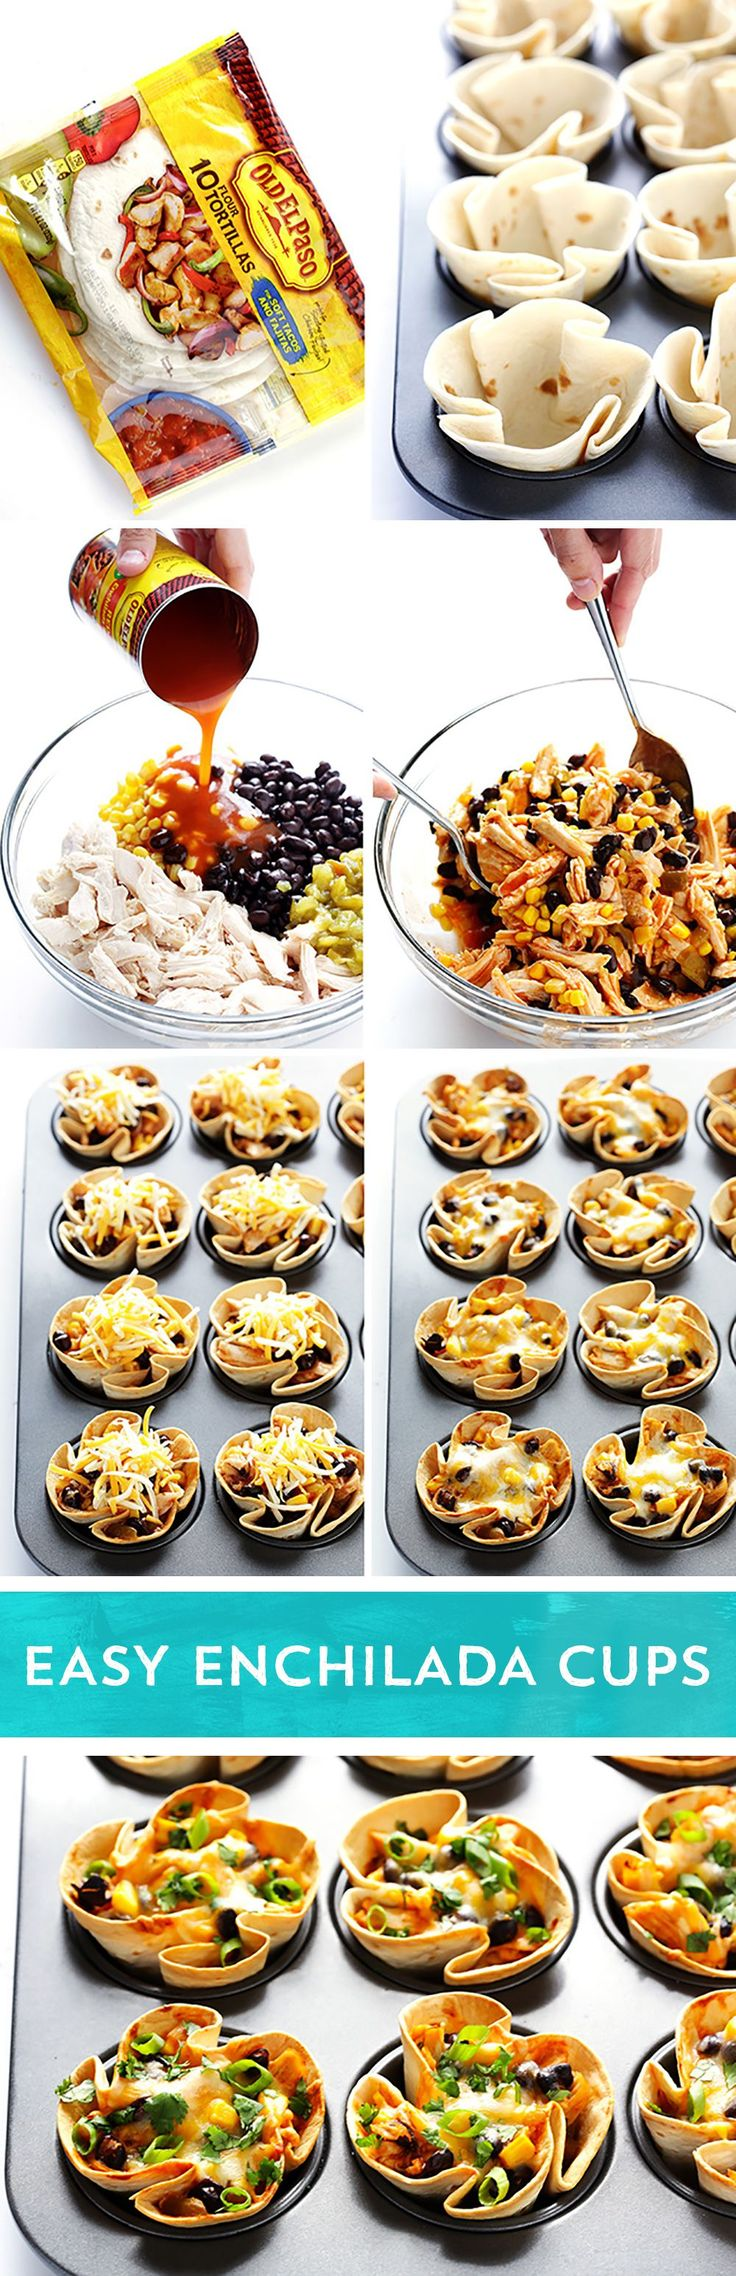 Try something new for taco night! These Easy Enchilada Cups from @Ali Ebright (Gimme Some Oven) are the perfect twist on traditional tacos! They're ready to eat in just 30 minutes - and they're the perfect party appetizer or dinner idea!